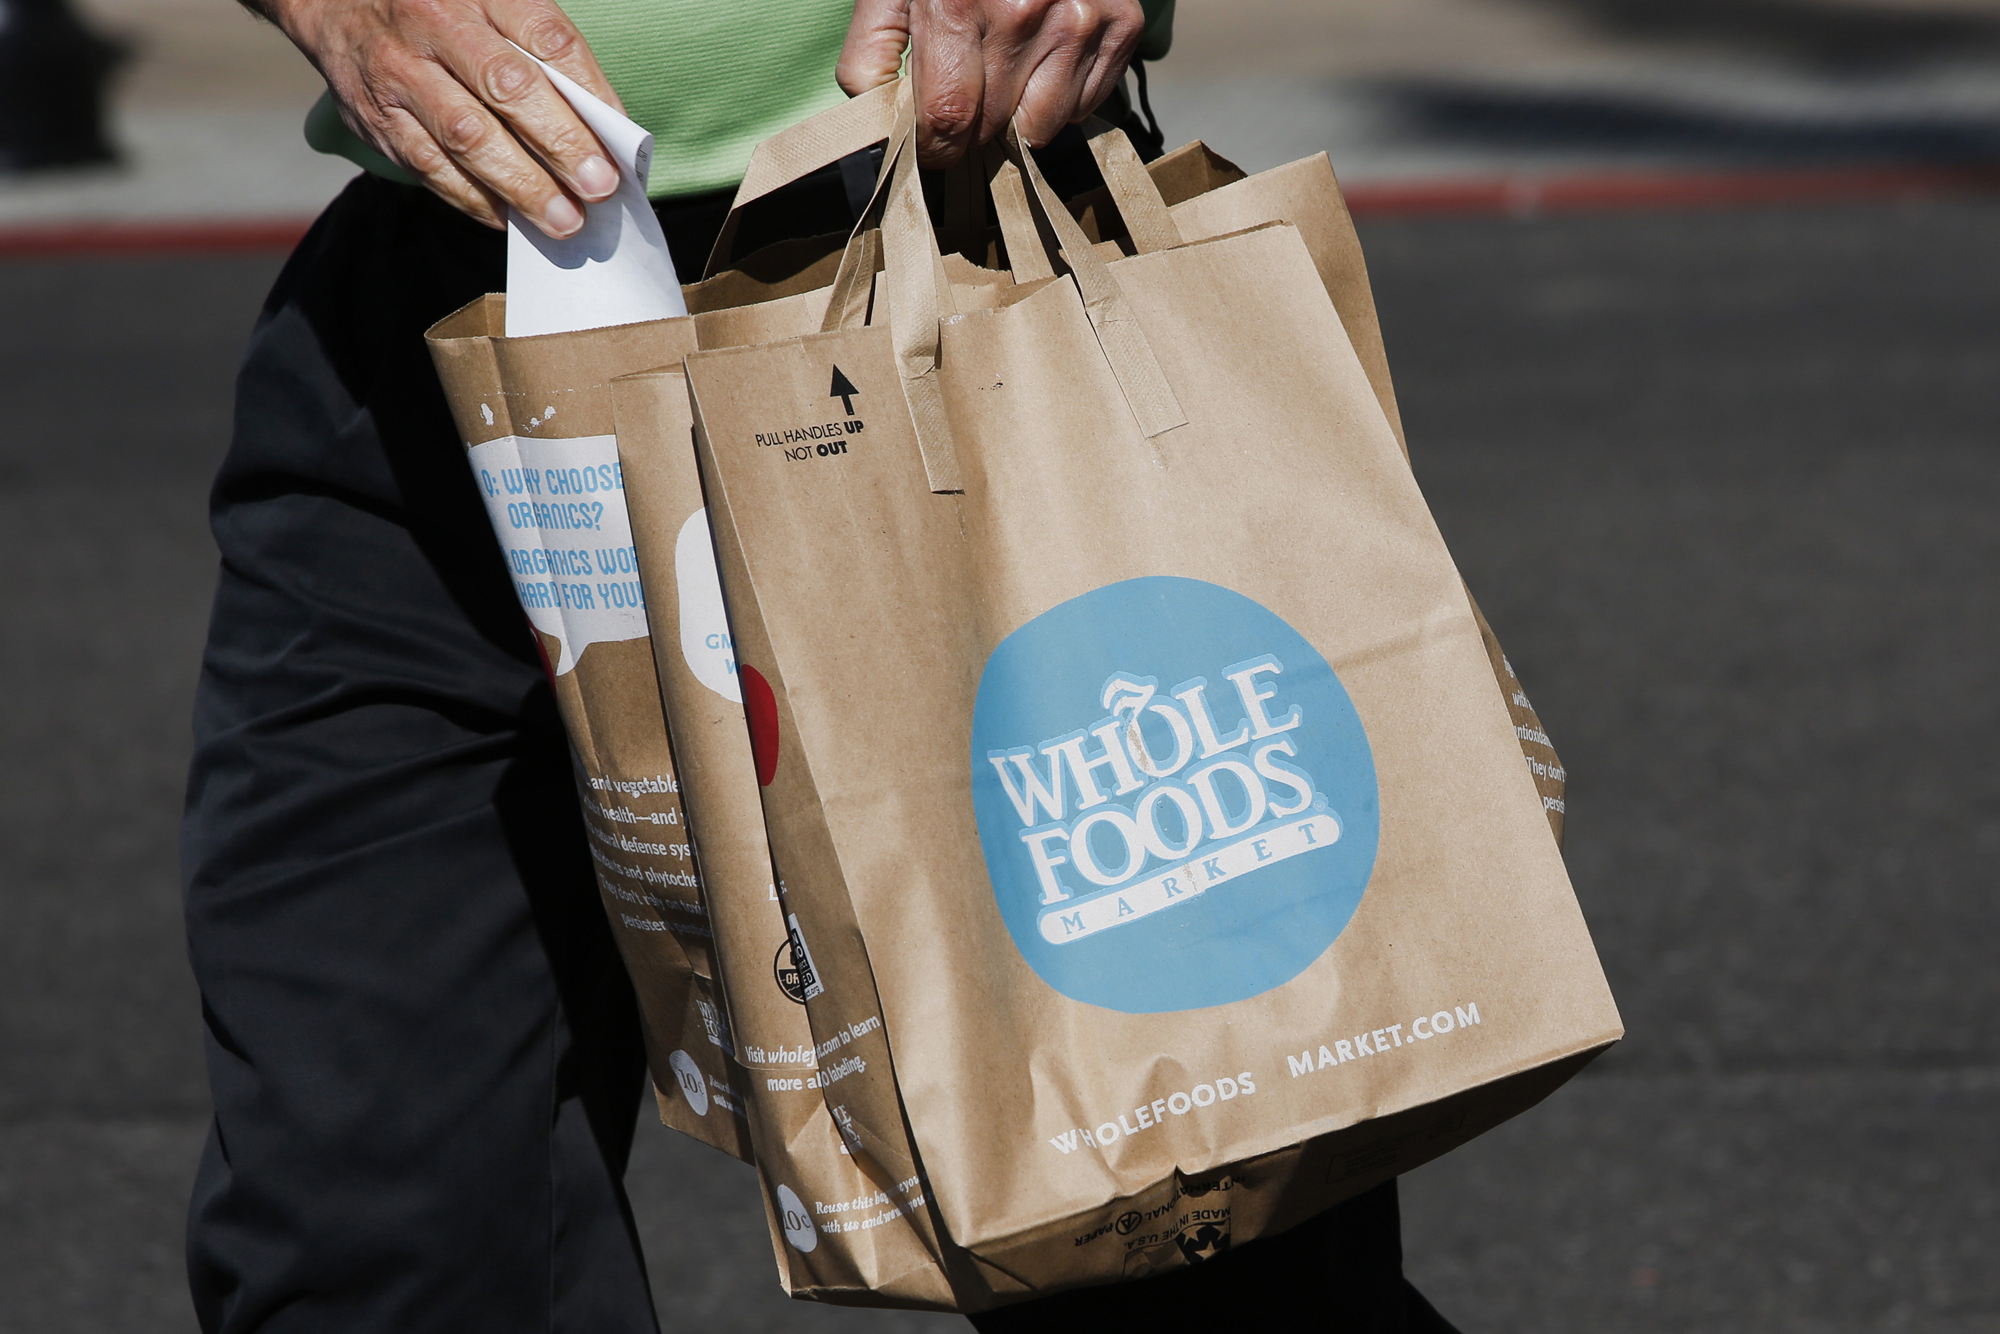 A customer carries shopping bags outside of a Whole Foods in El Segundo, Calif., Nov. 5, 2013.